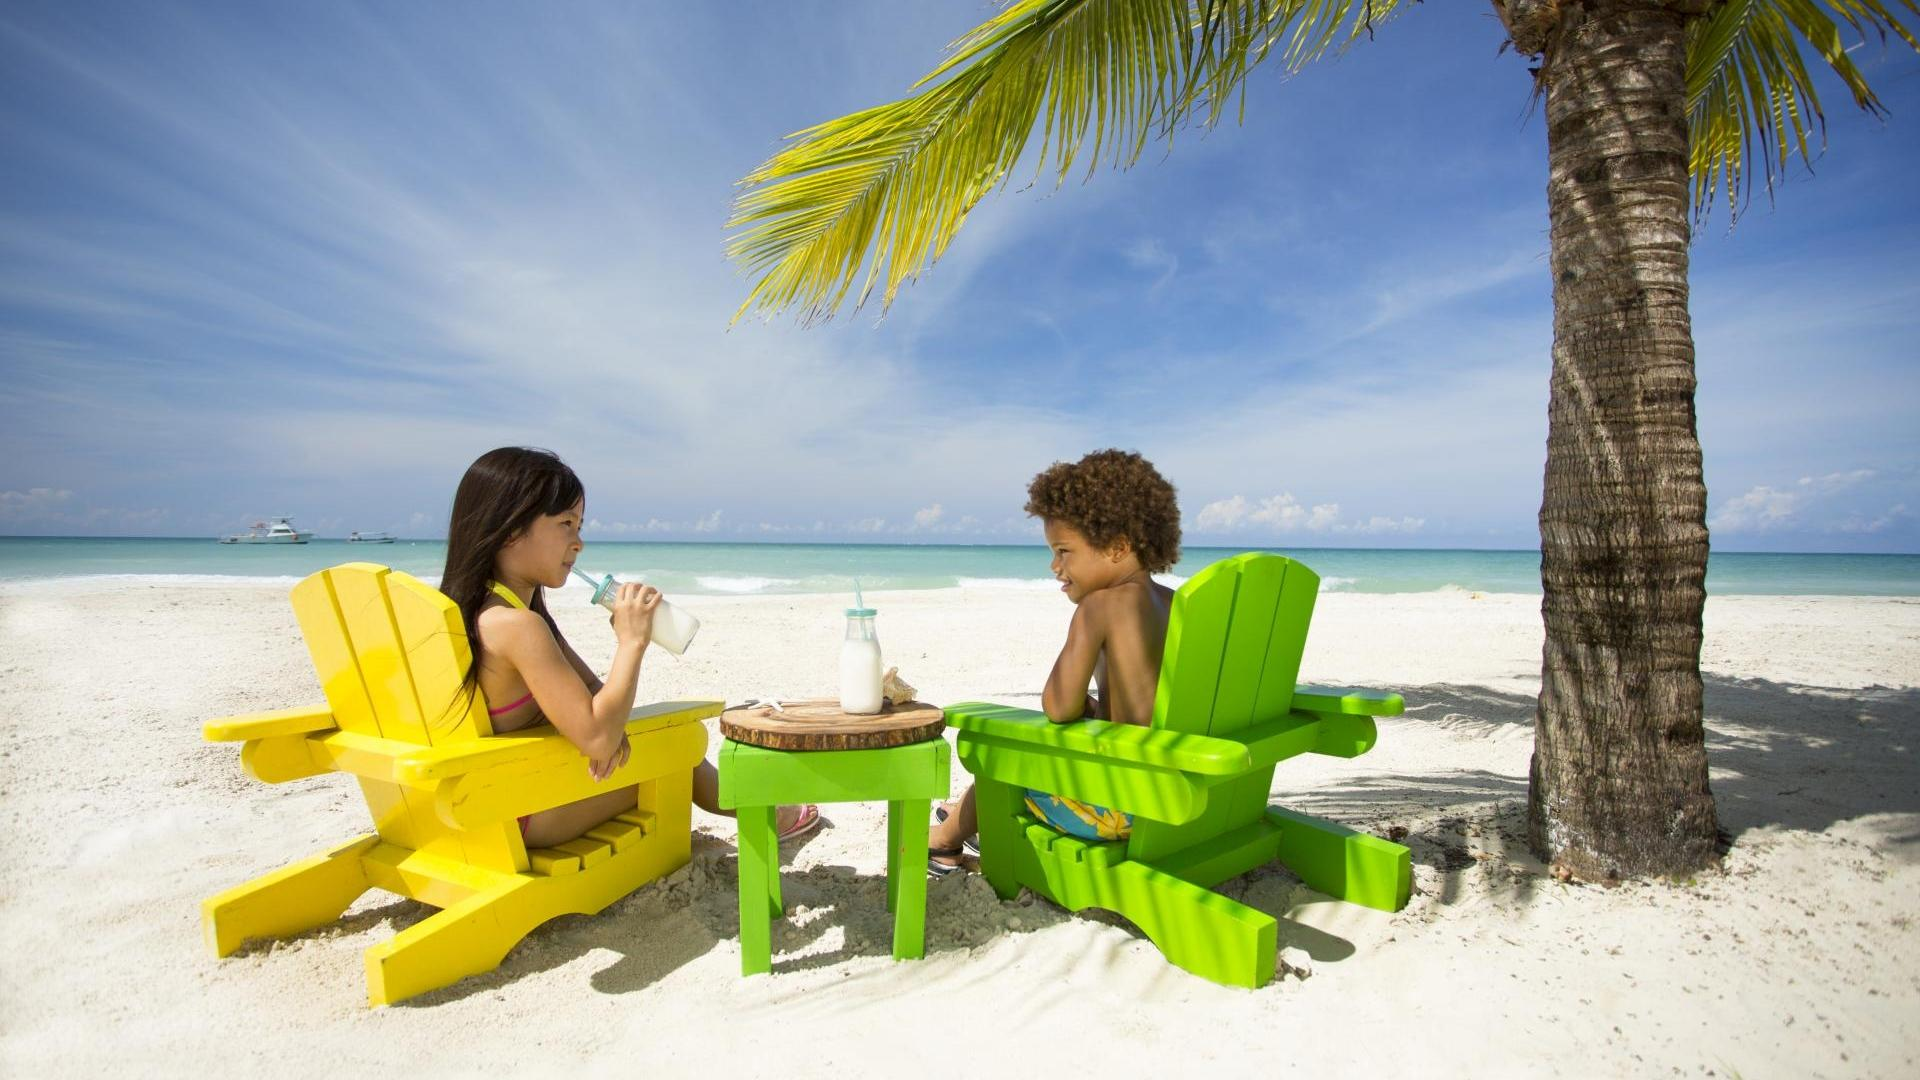 luxury family-friendly resort and spa Jamaica, Caribbean - BSNL